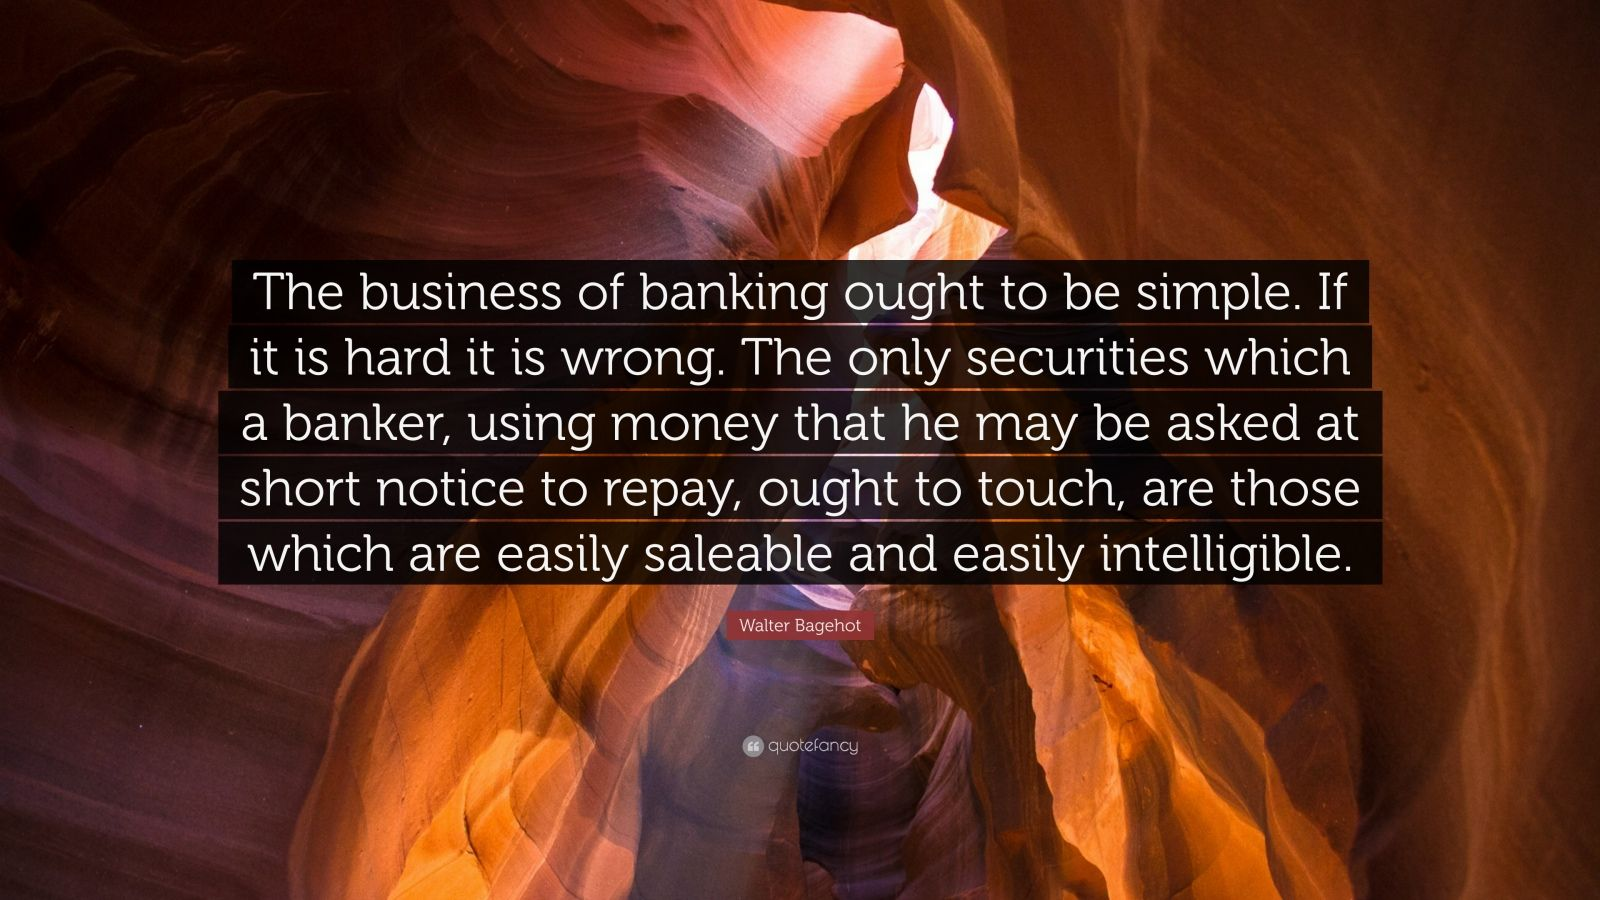 "Walter Bagehot Quote: ""The business of banking ought to be simple. If it is hard it is wrong. The only securities which a banker, using money that he may be asked at short notice to repay, ought to touch, are those which are easily saleable and easily intelligible."""